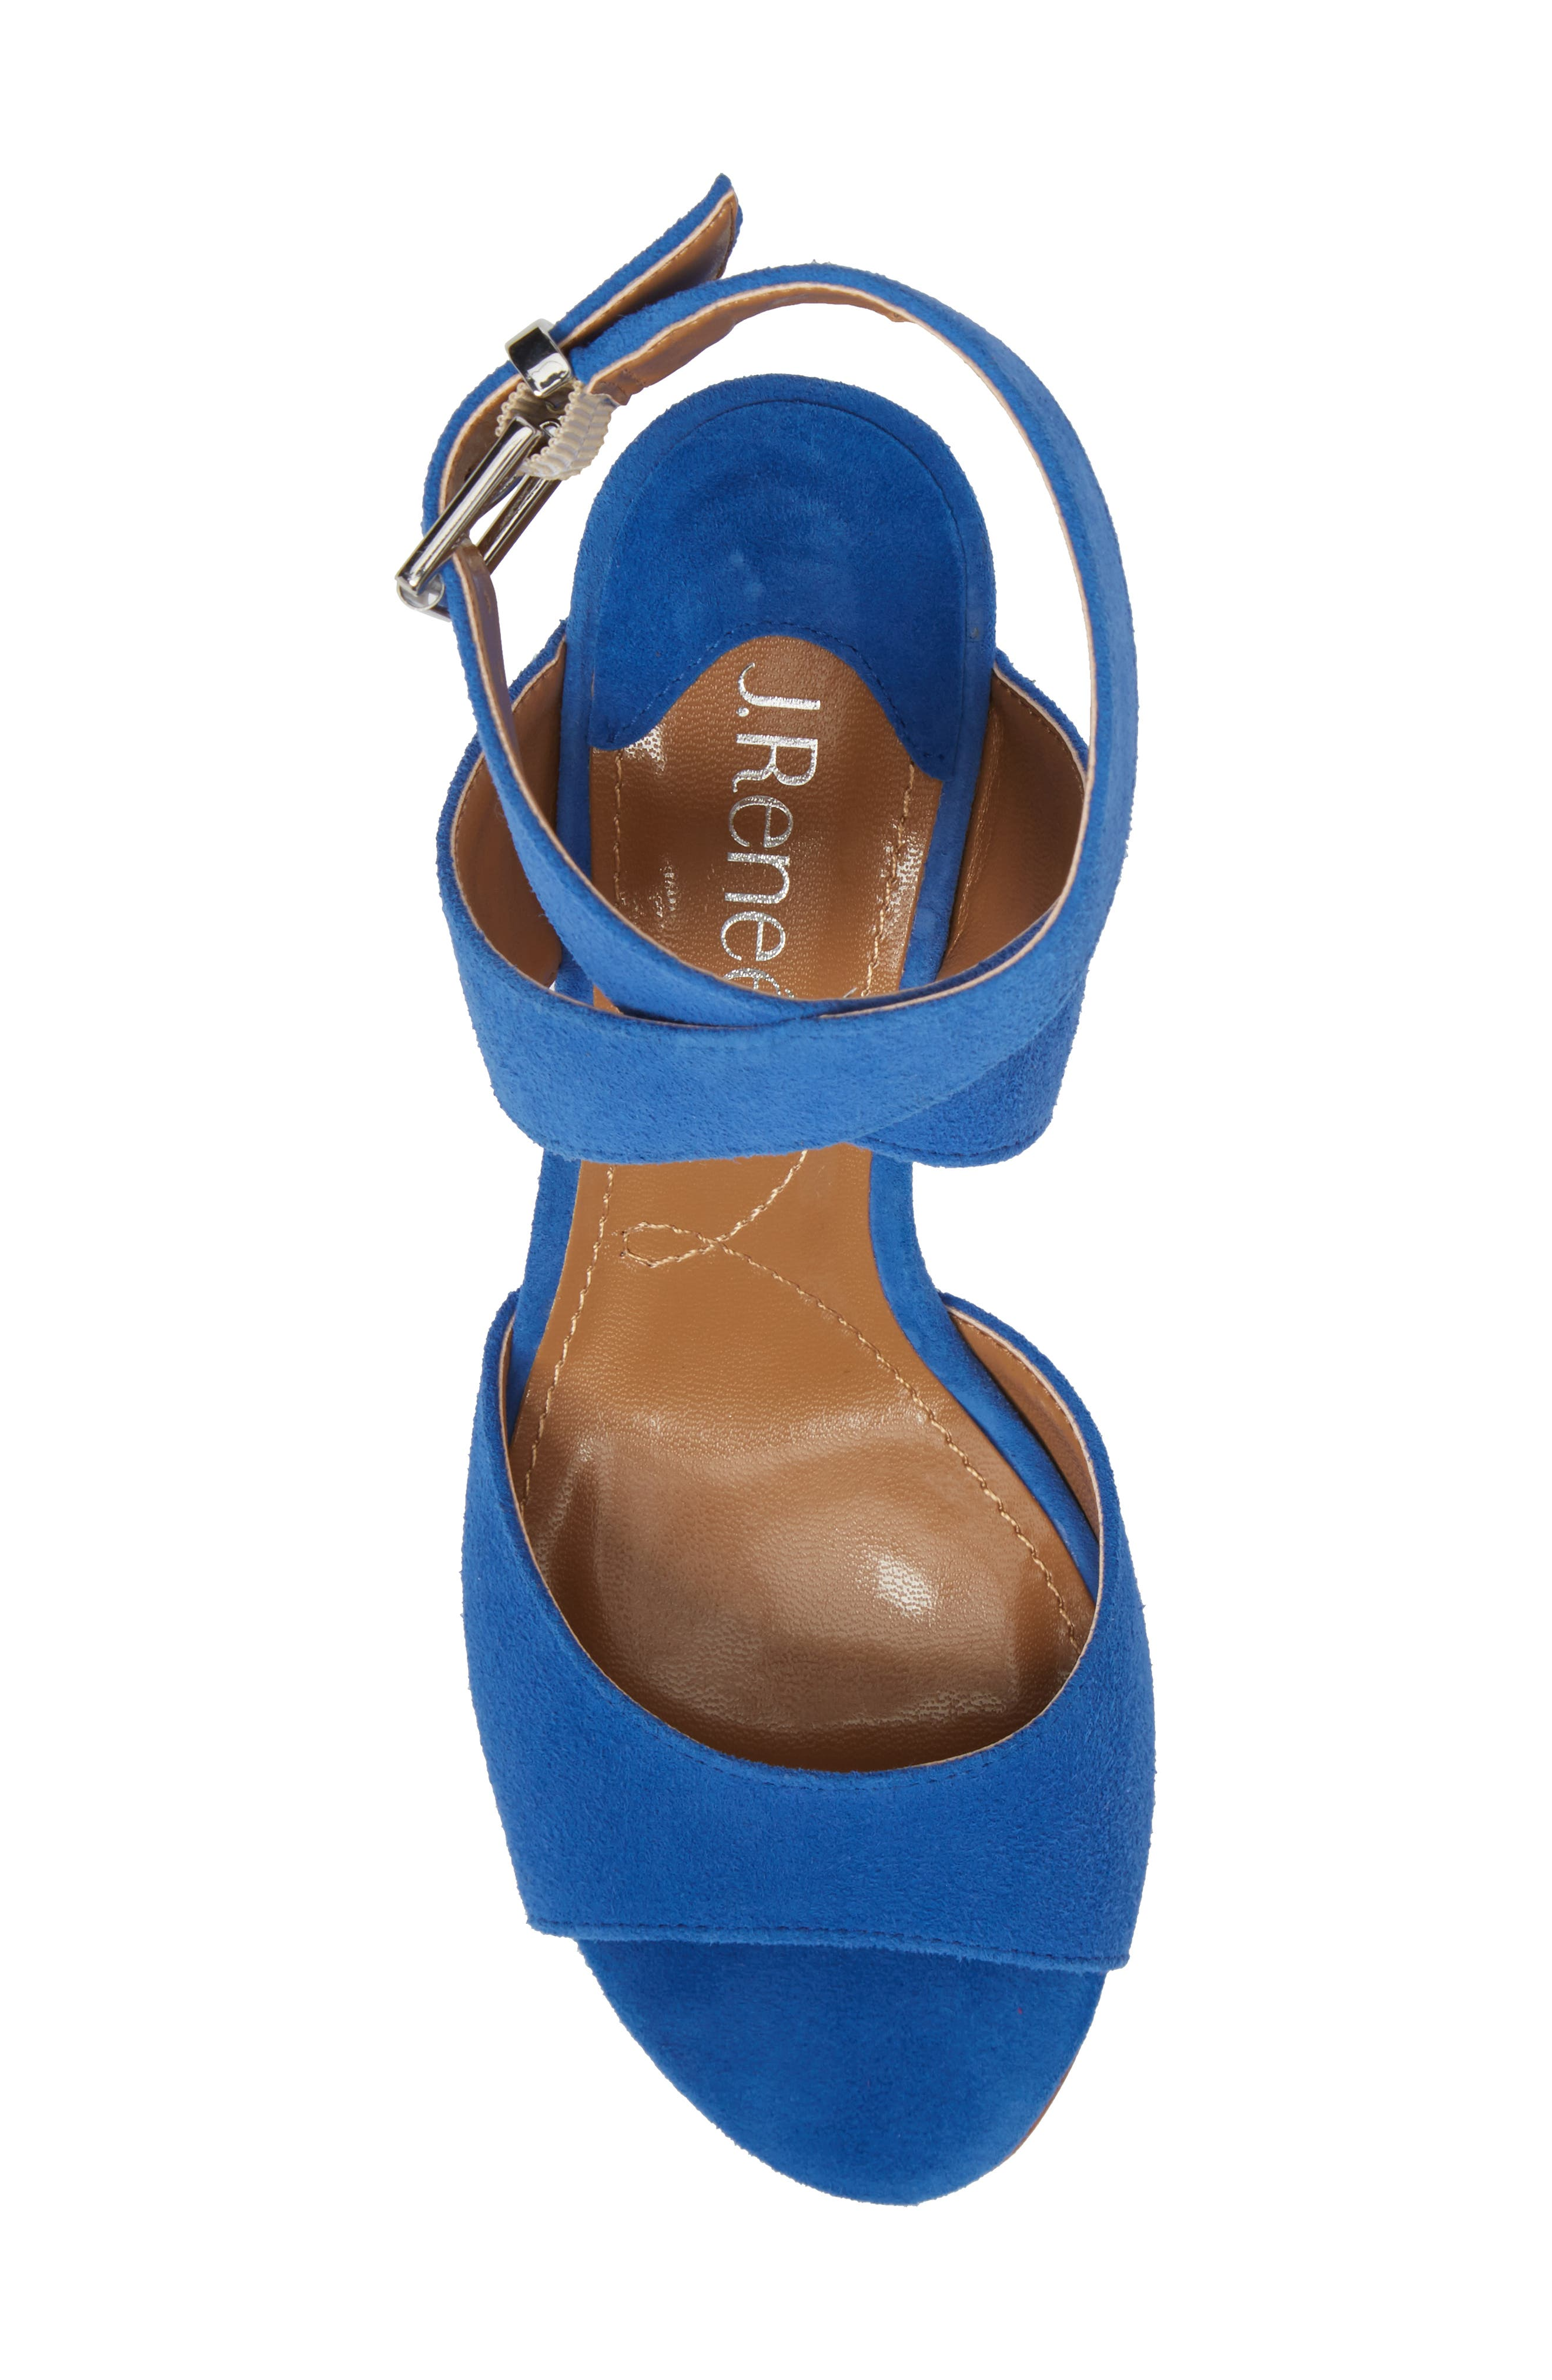 'Soncino' Ankle Strap Sandal,                             Alternate thumbnail 5, color,                             BLUE FABRIC